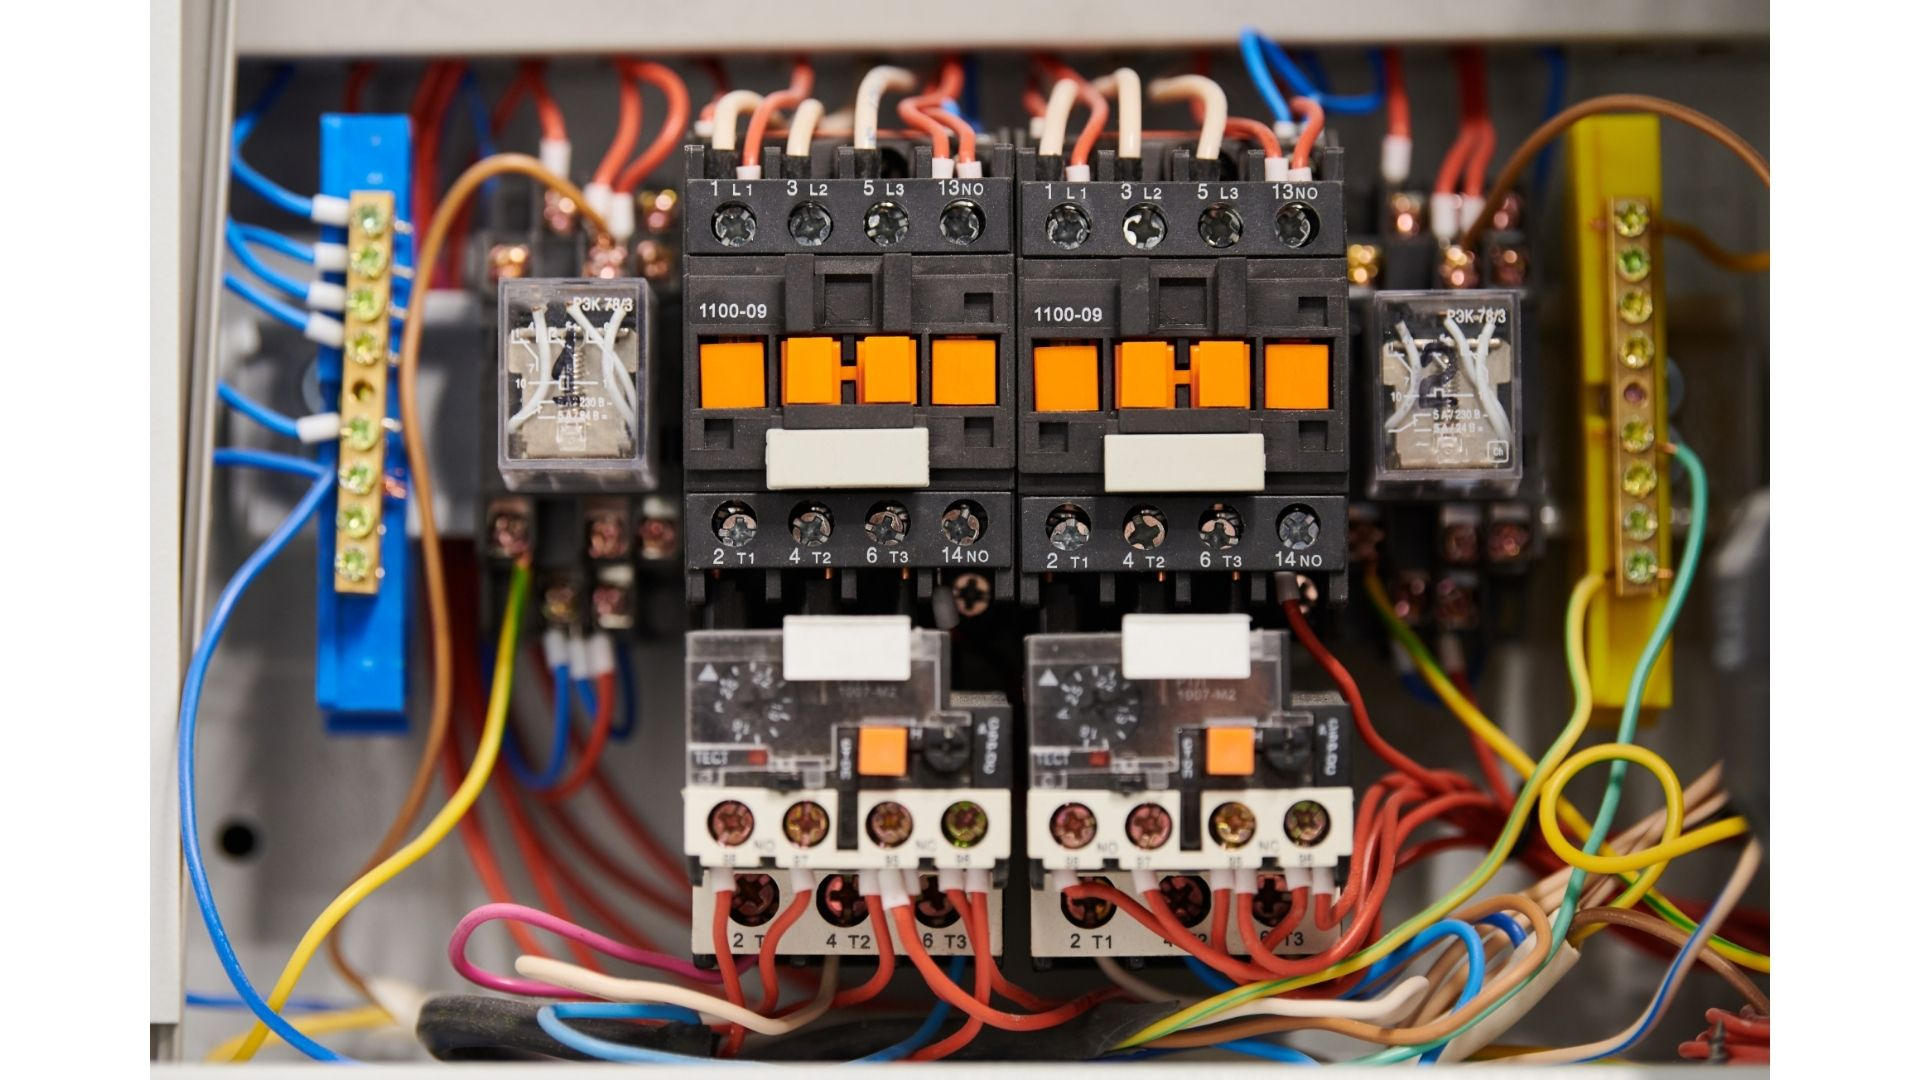 How Do Circuit Breakers Safeguard Our Homes?